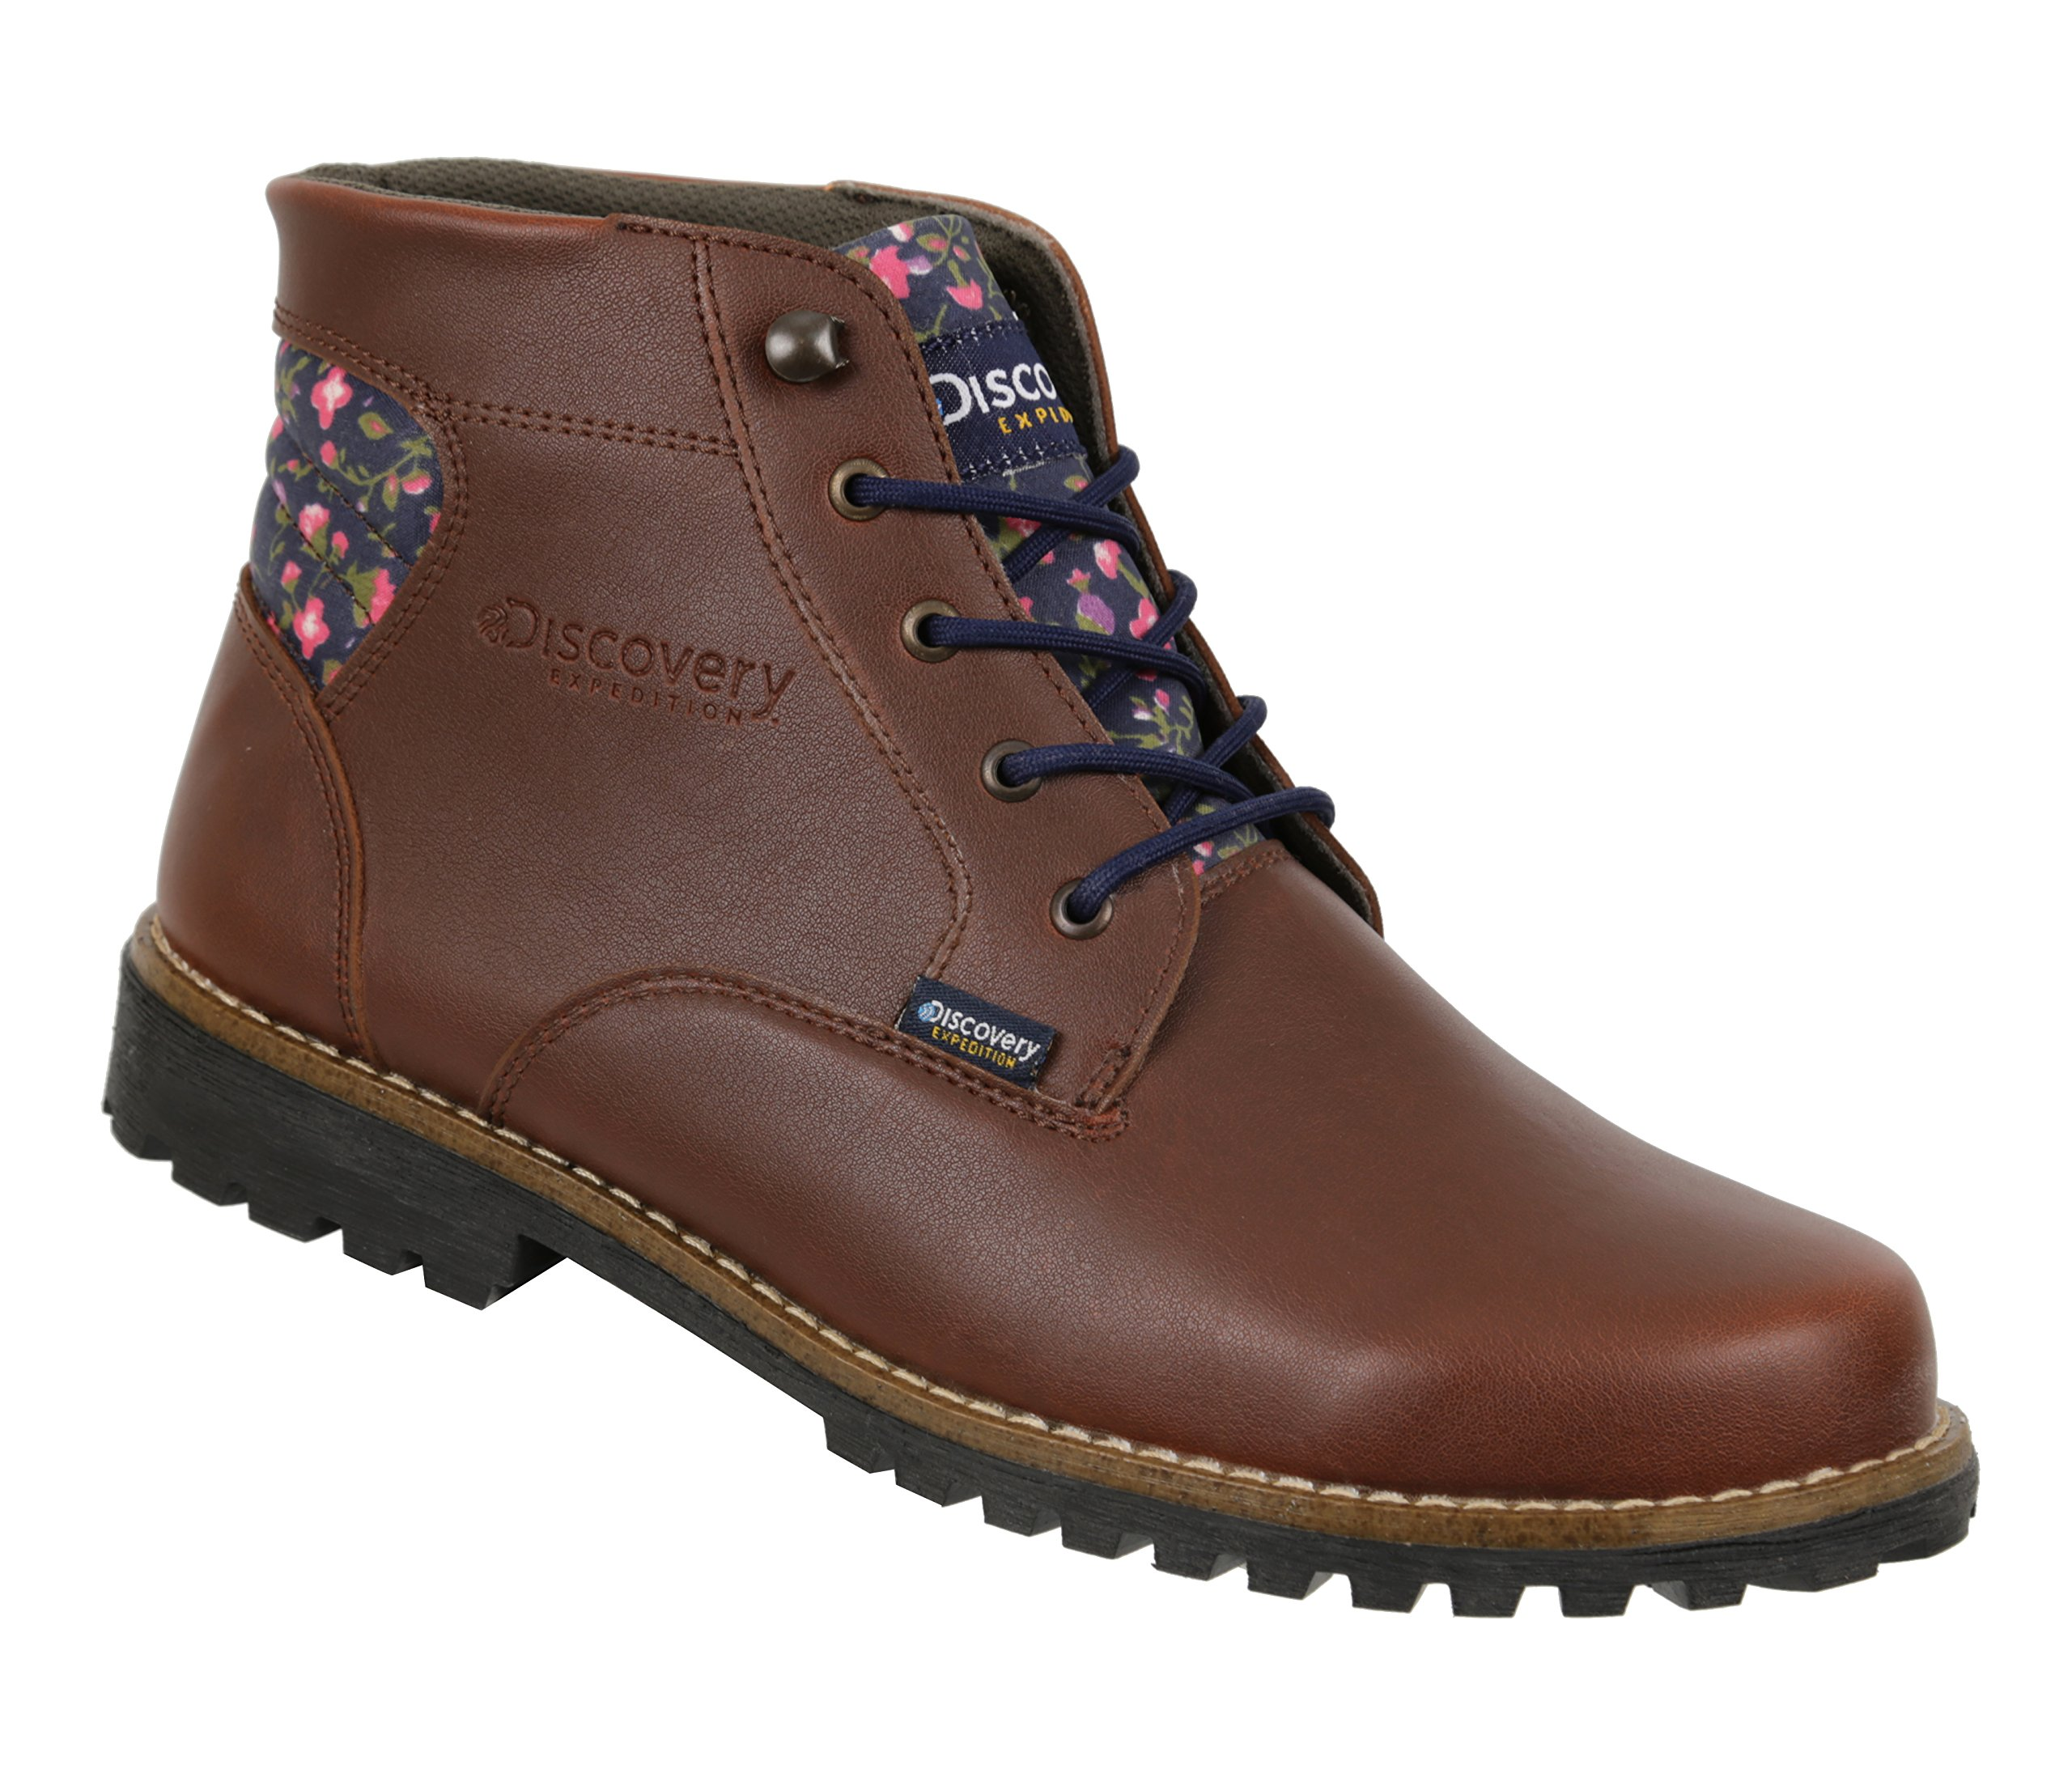 Discovery Expedition Womens Leather Floral Print Outdoor Backpacking Trek Hiking Boots Gold Brown 9